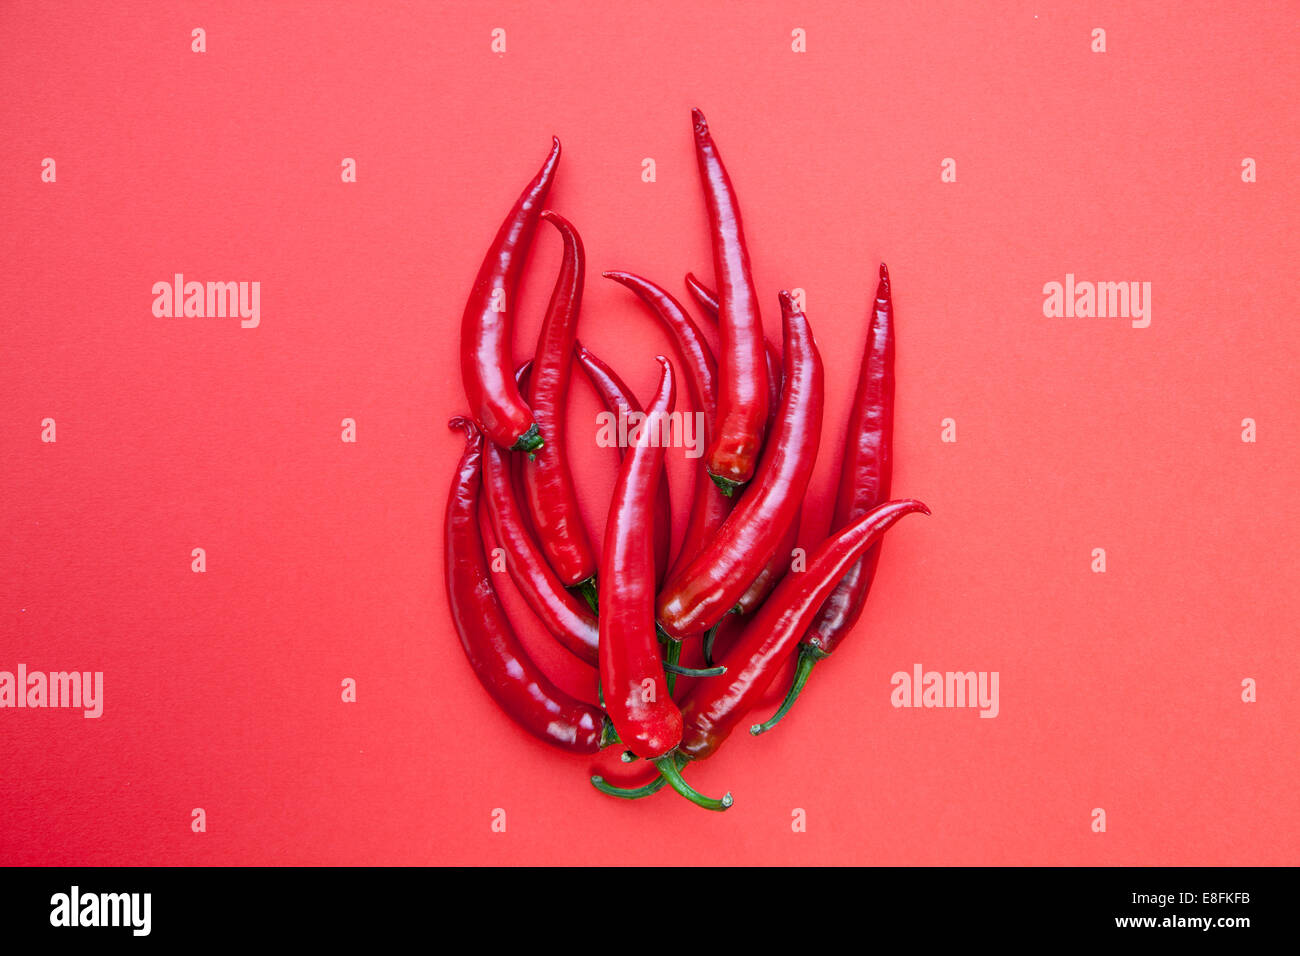 Red chill peppers arranged in the shape of a flame - Stock Image